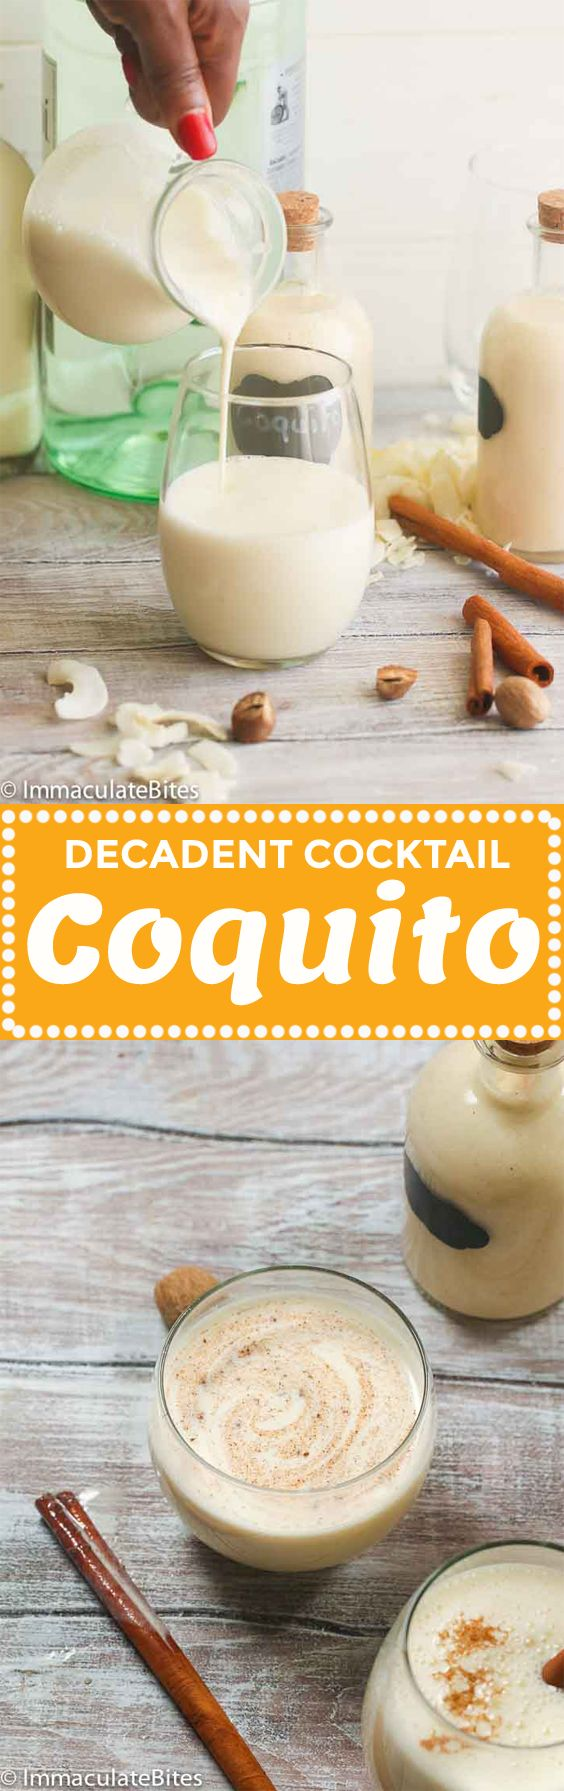 Coquito or also known as the Puerto Rican Eggnog is a refreshing and tropical drink with a twist made primarily of sweetened condensed milk, coconut milk, cinnamon, nutmeg and rum. Rich, creamy, sweetened coconut rum drink! Christmas isn't complete without glasses of boozy drinks over festive songs and loud chatter. It may …